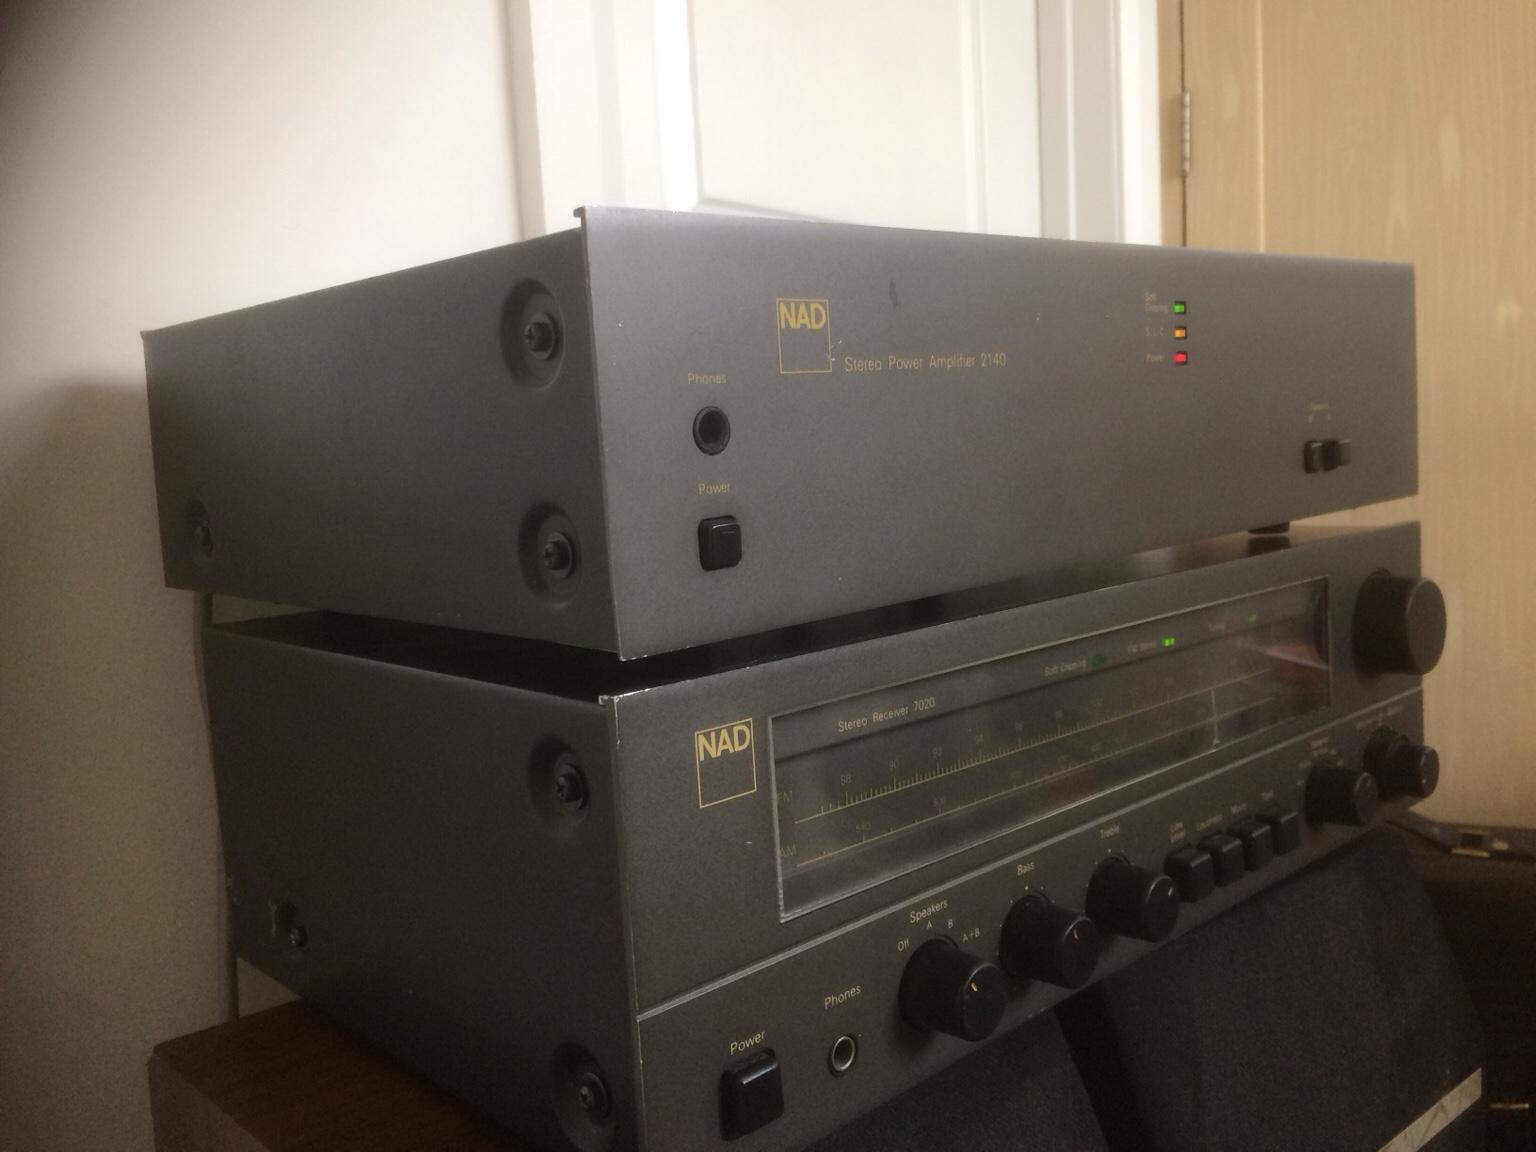 NAD power amplifier and stereo receiver